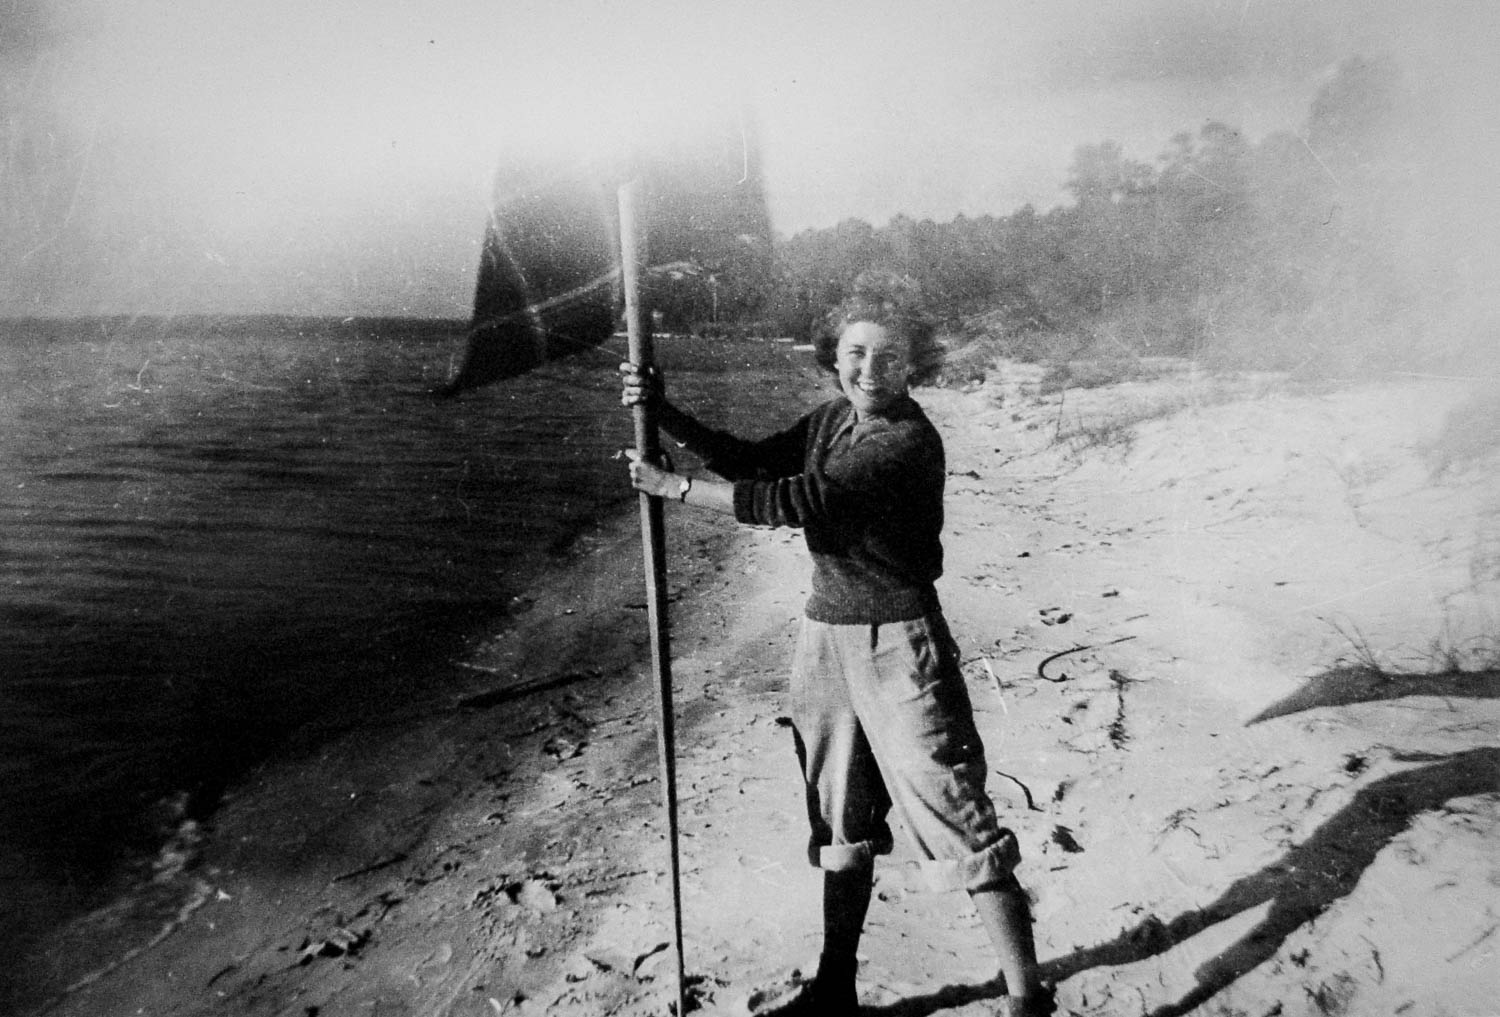 Barbara Smith Coan during service in the WAVES, ca. 1943